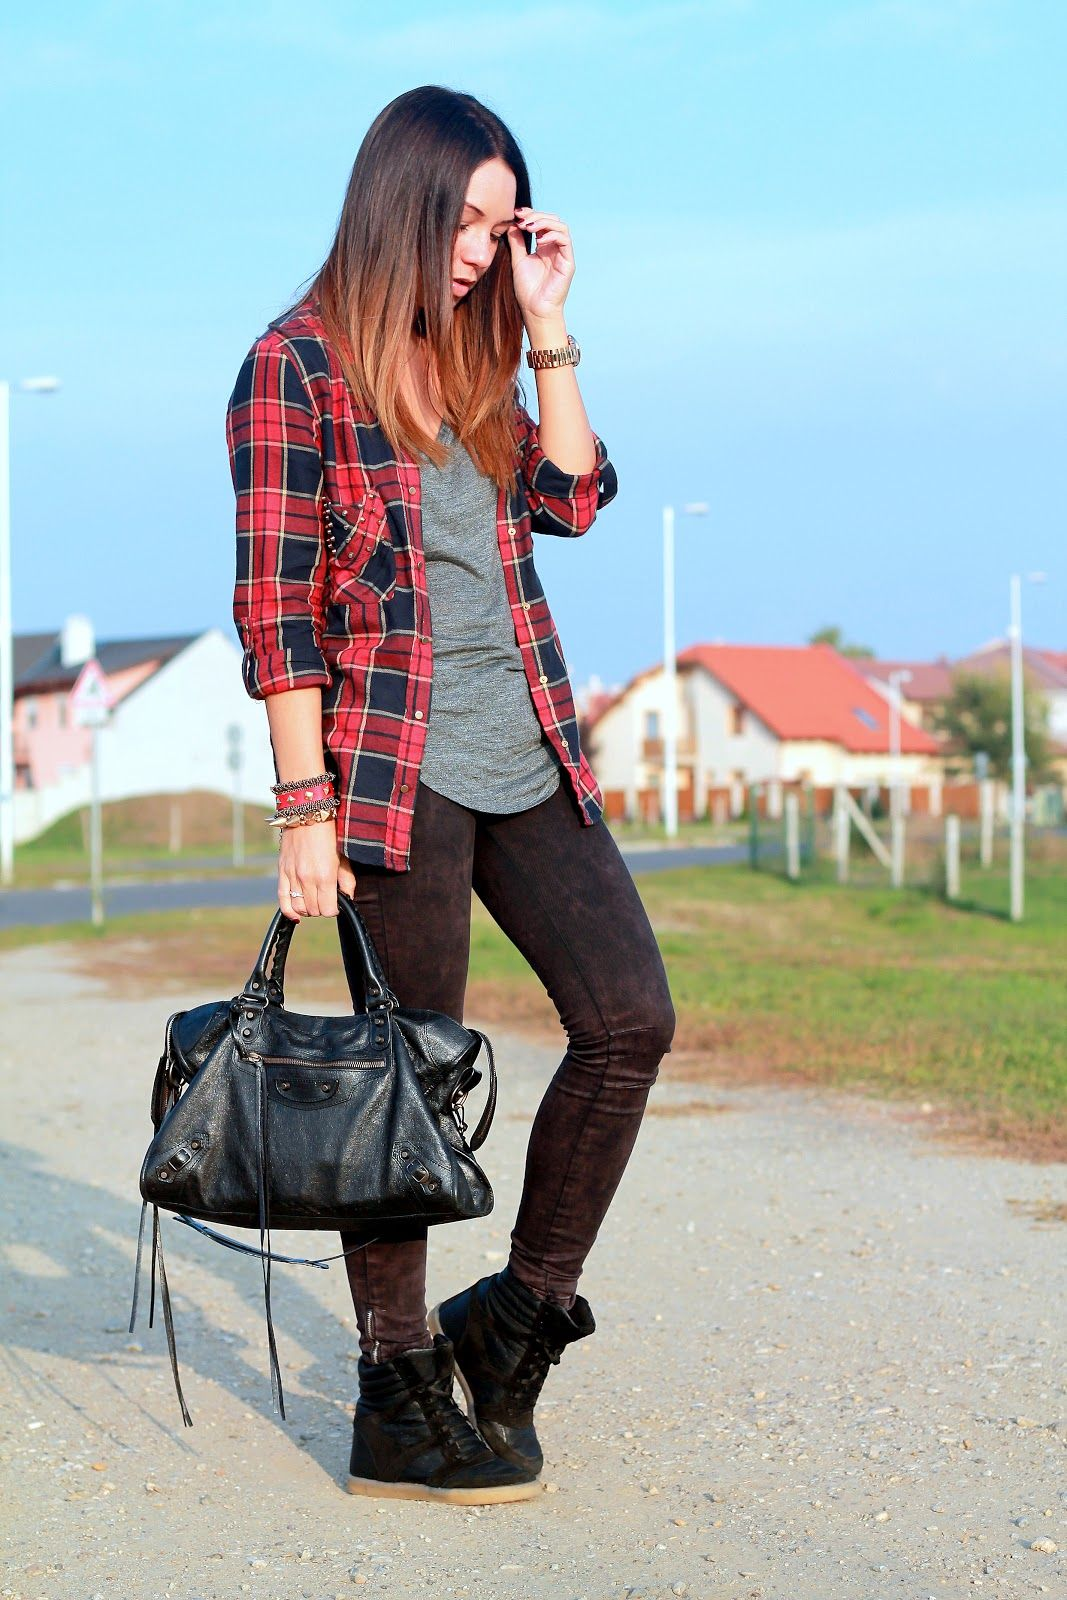 Flannel shirt bag  Cashmere in Style  Laidback plaid shirt u sneakers Mariann Mezo